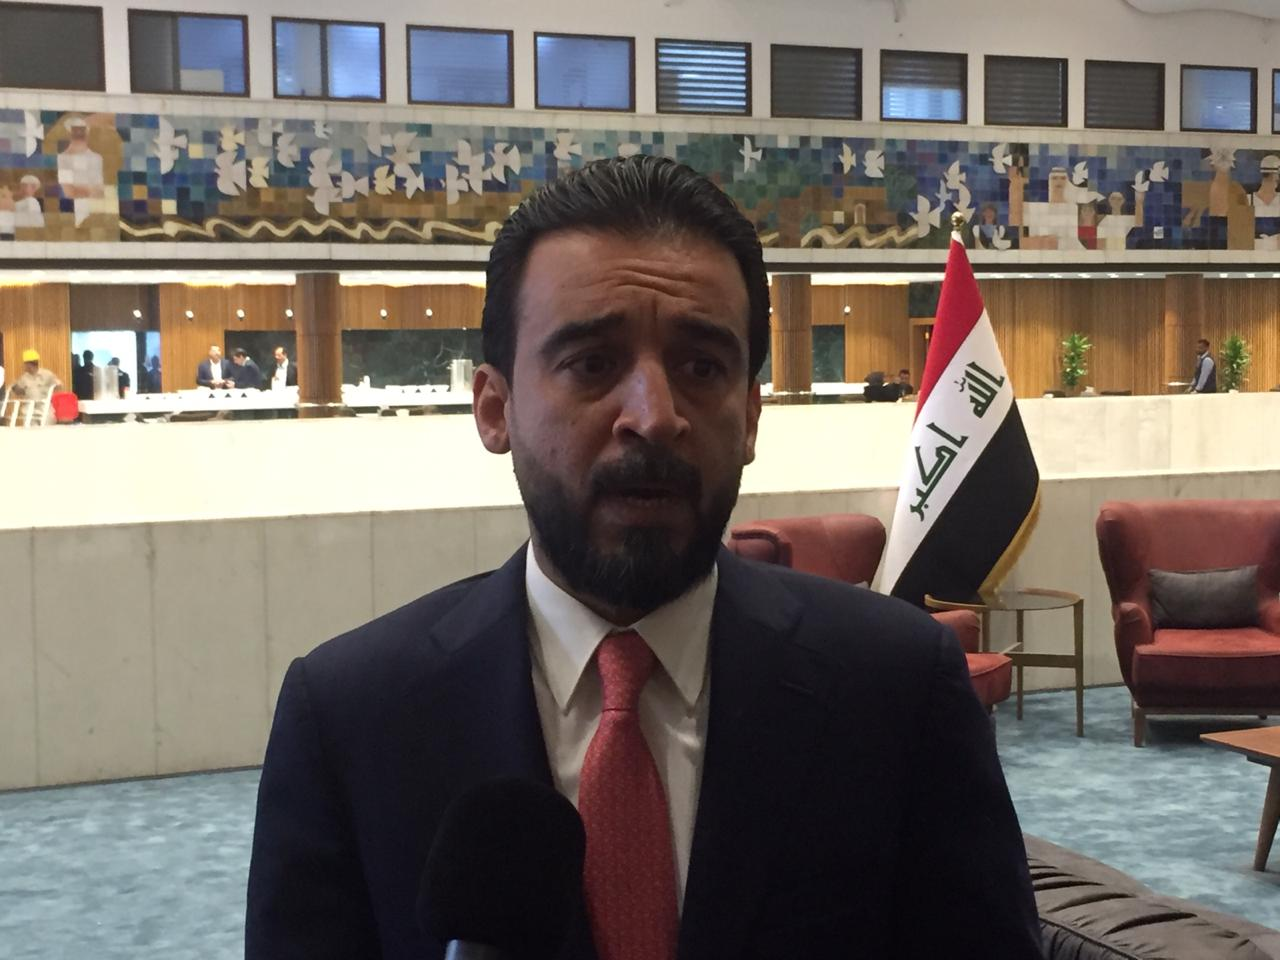 Al-Halbousi: The electoral law includes 50% individual lists and 50% electoral lists